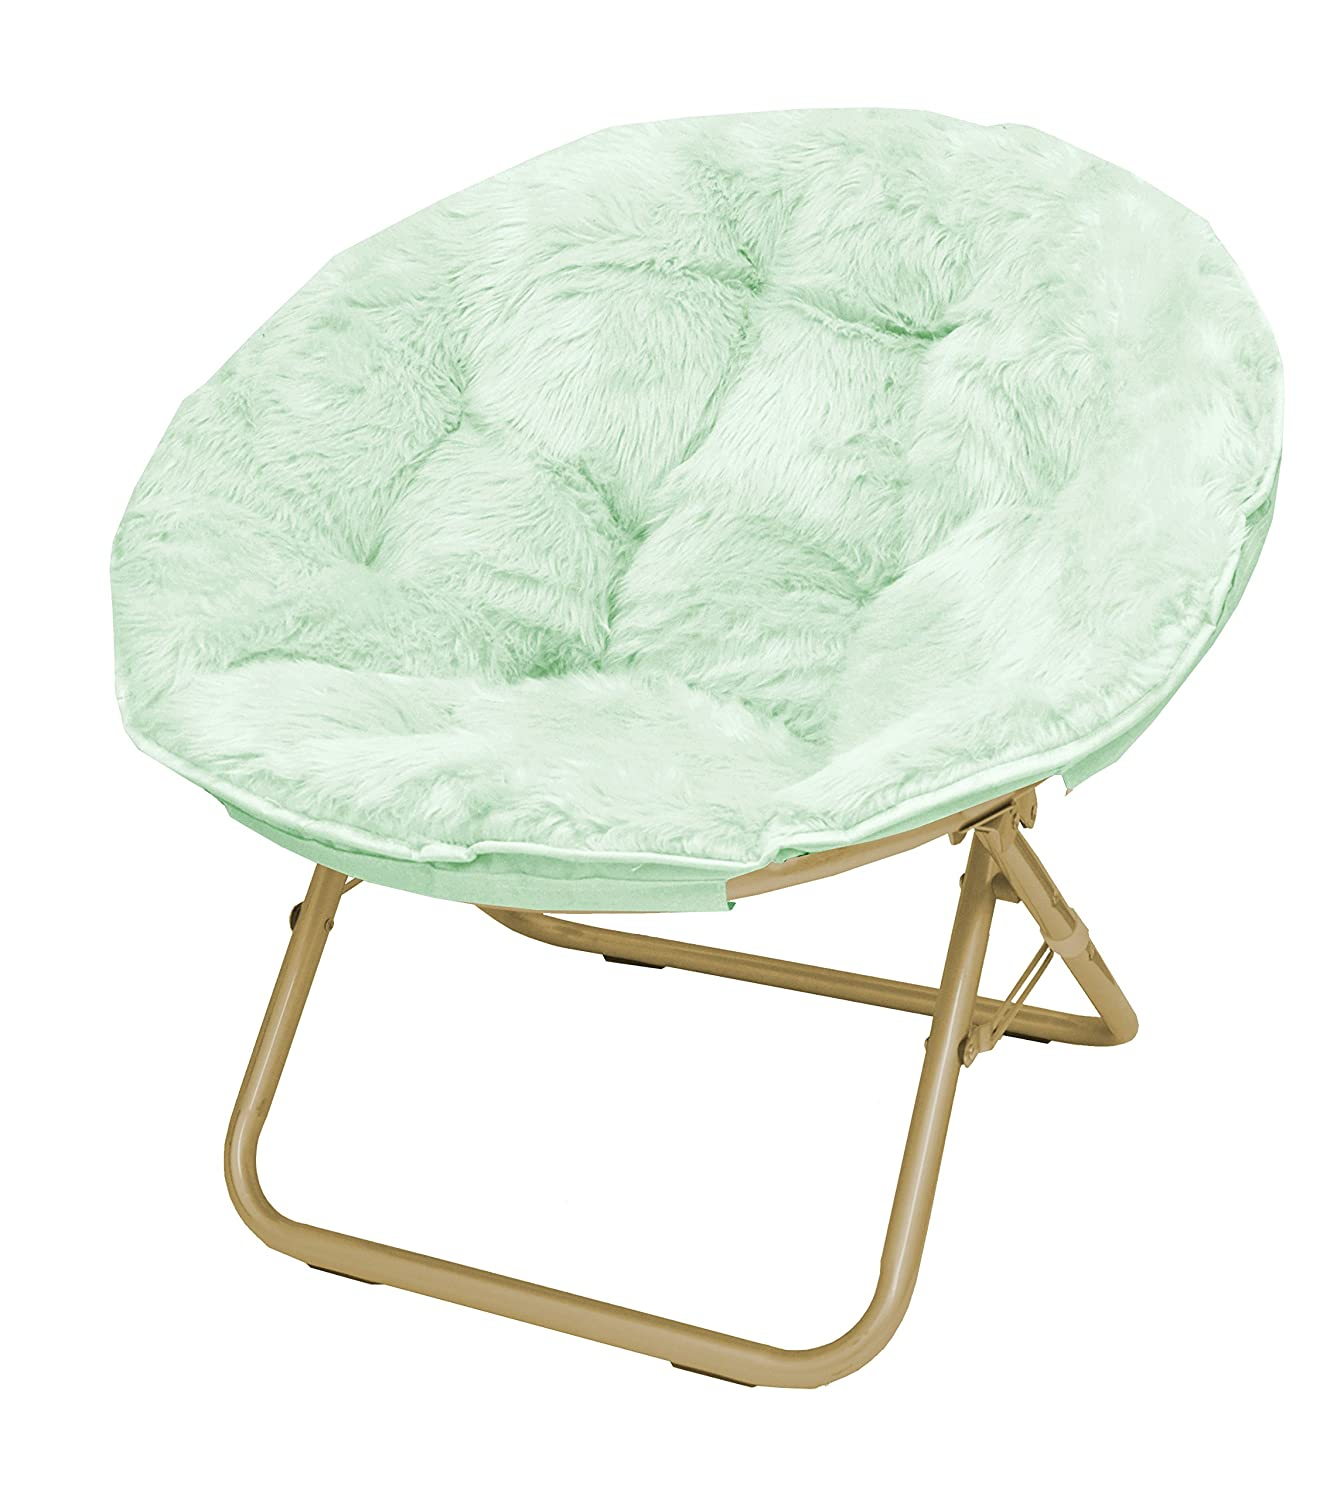 Urban Shop Faux Fur Saucer Chair with Metal Frame, One Size, Mint